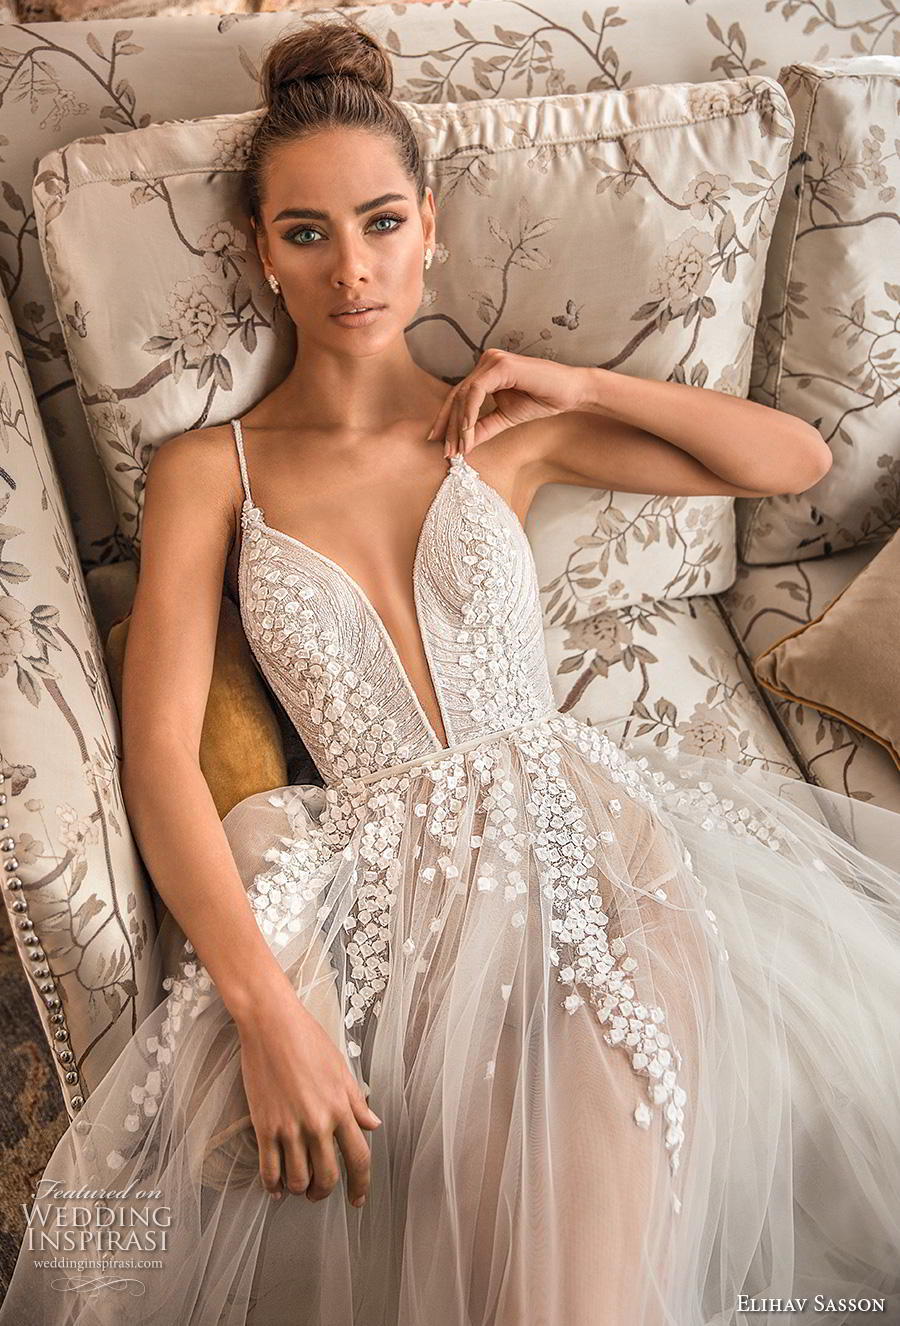 elihav sasson 2019 bridal sleeveless spaghetti strap deep plunging sweetheart neckline heavily embellished bodice tulle skirt romantic soft a line wedding dress (2) zv mv